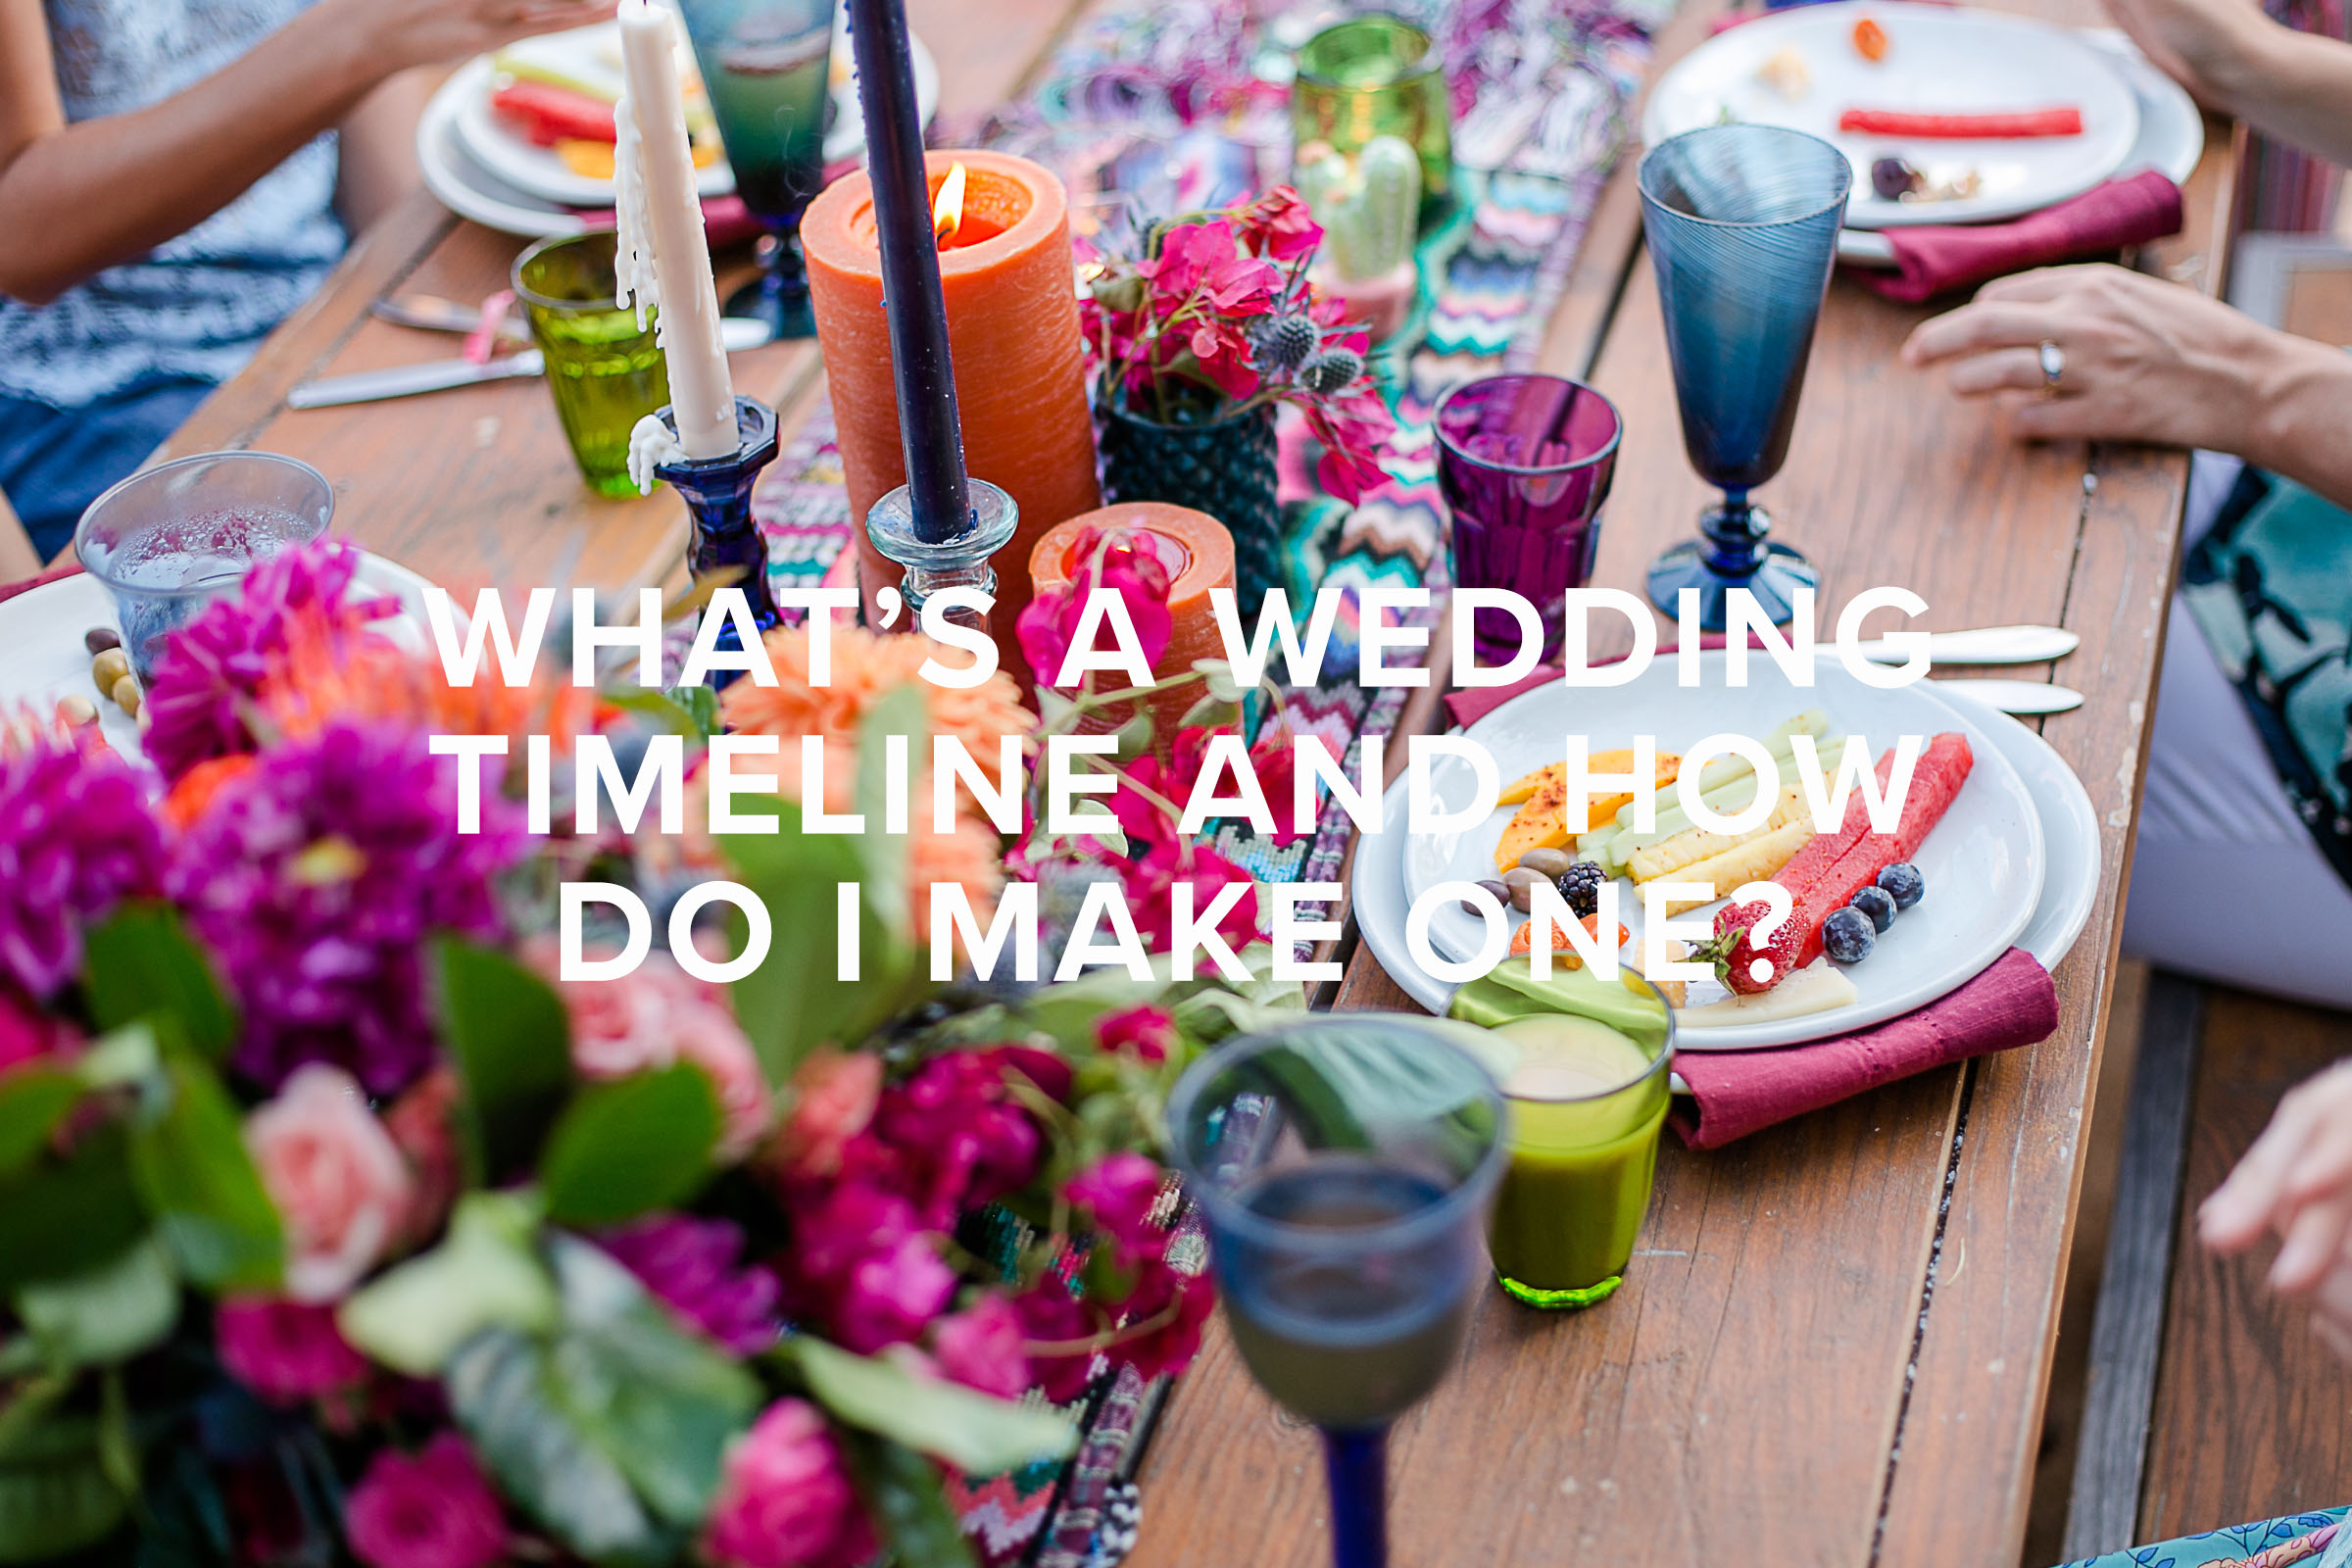 What's a wedding timeline and how do I make one?.jpg